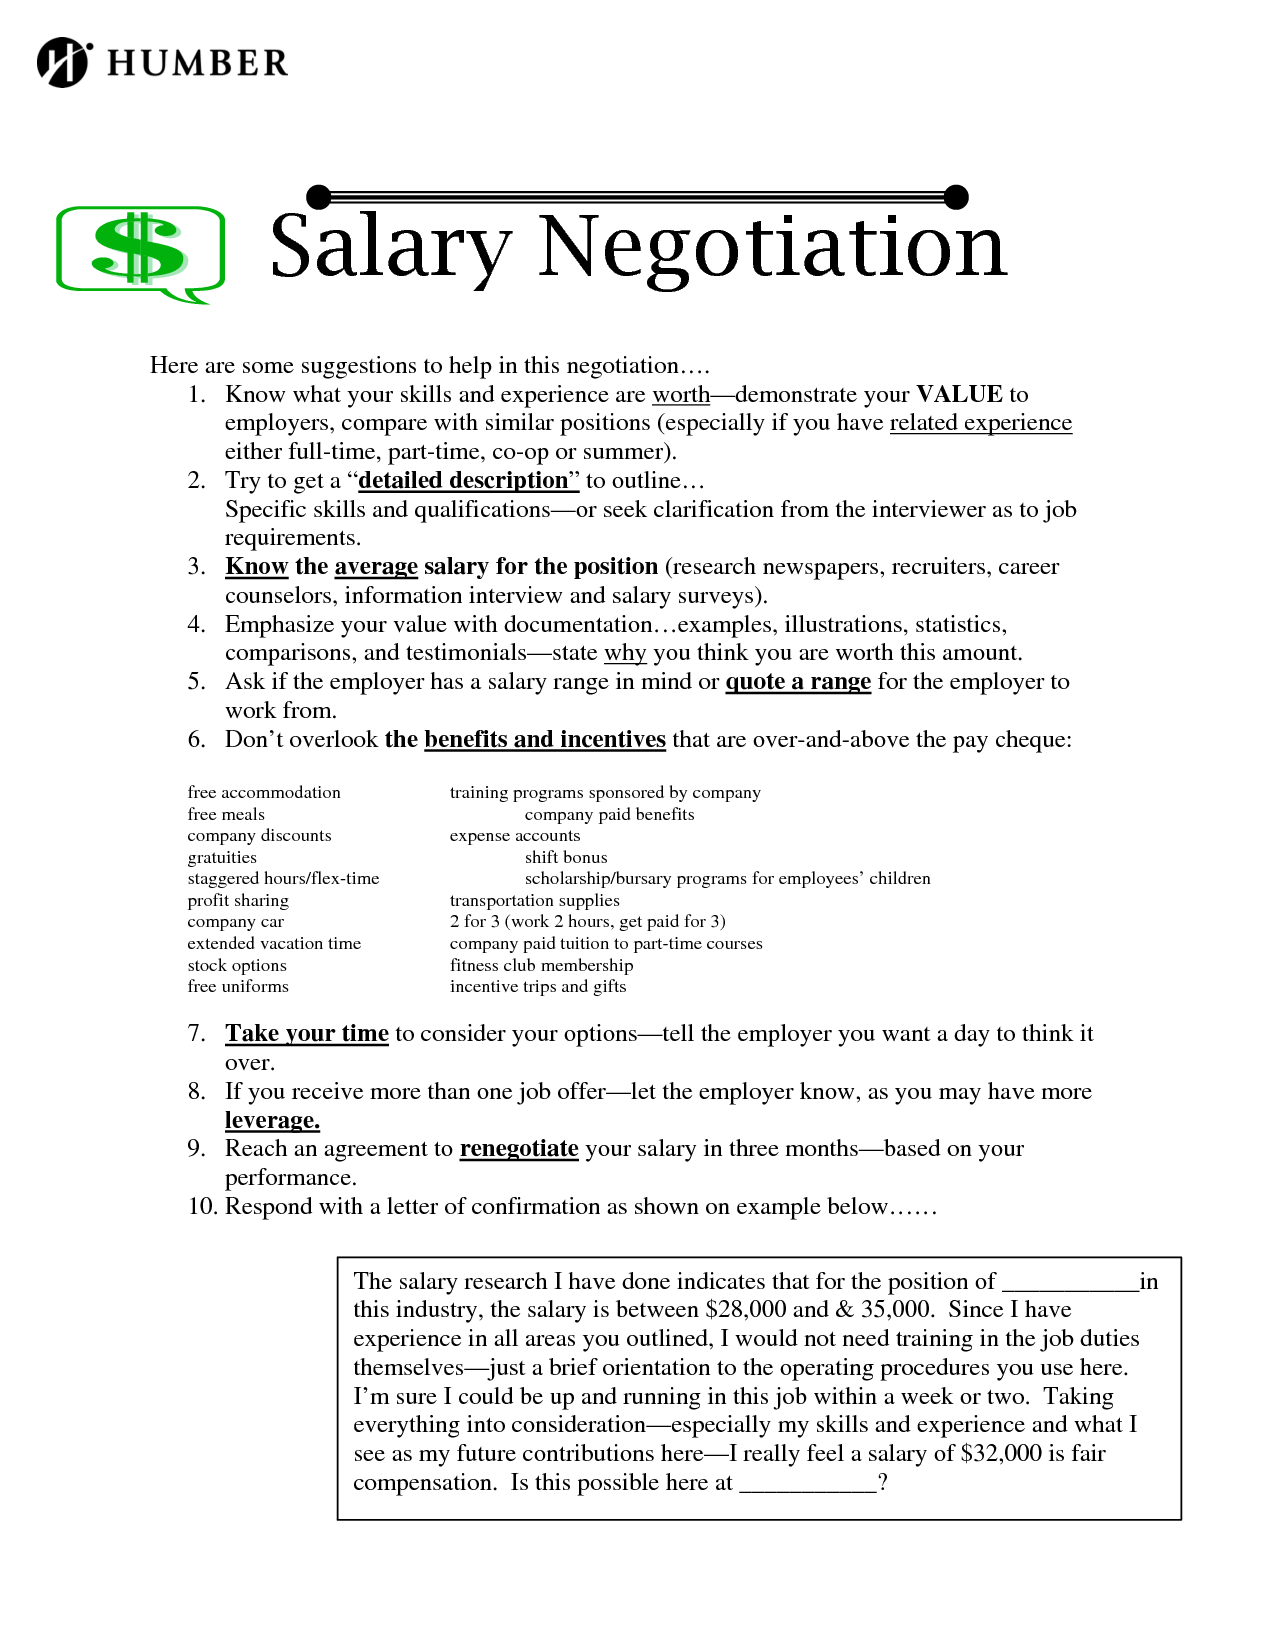 Counter Offer Salary Letter Sample.Appointment Letter Sample For General Manager Job Format